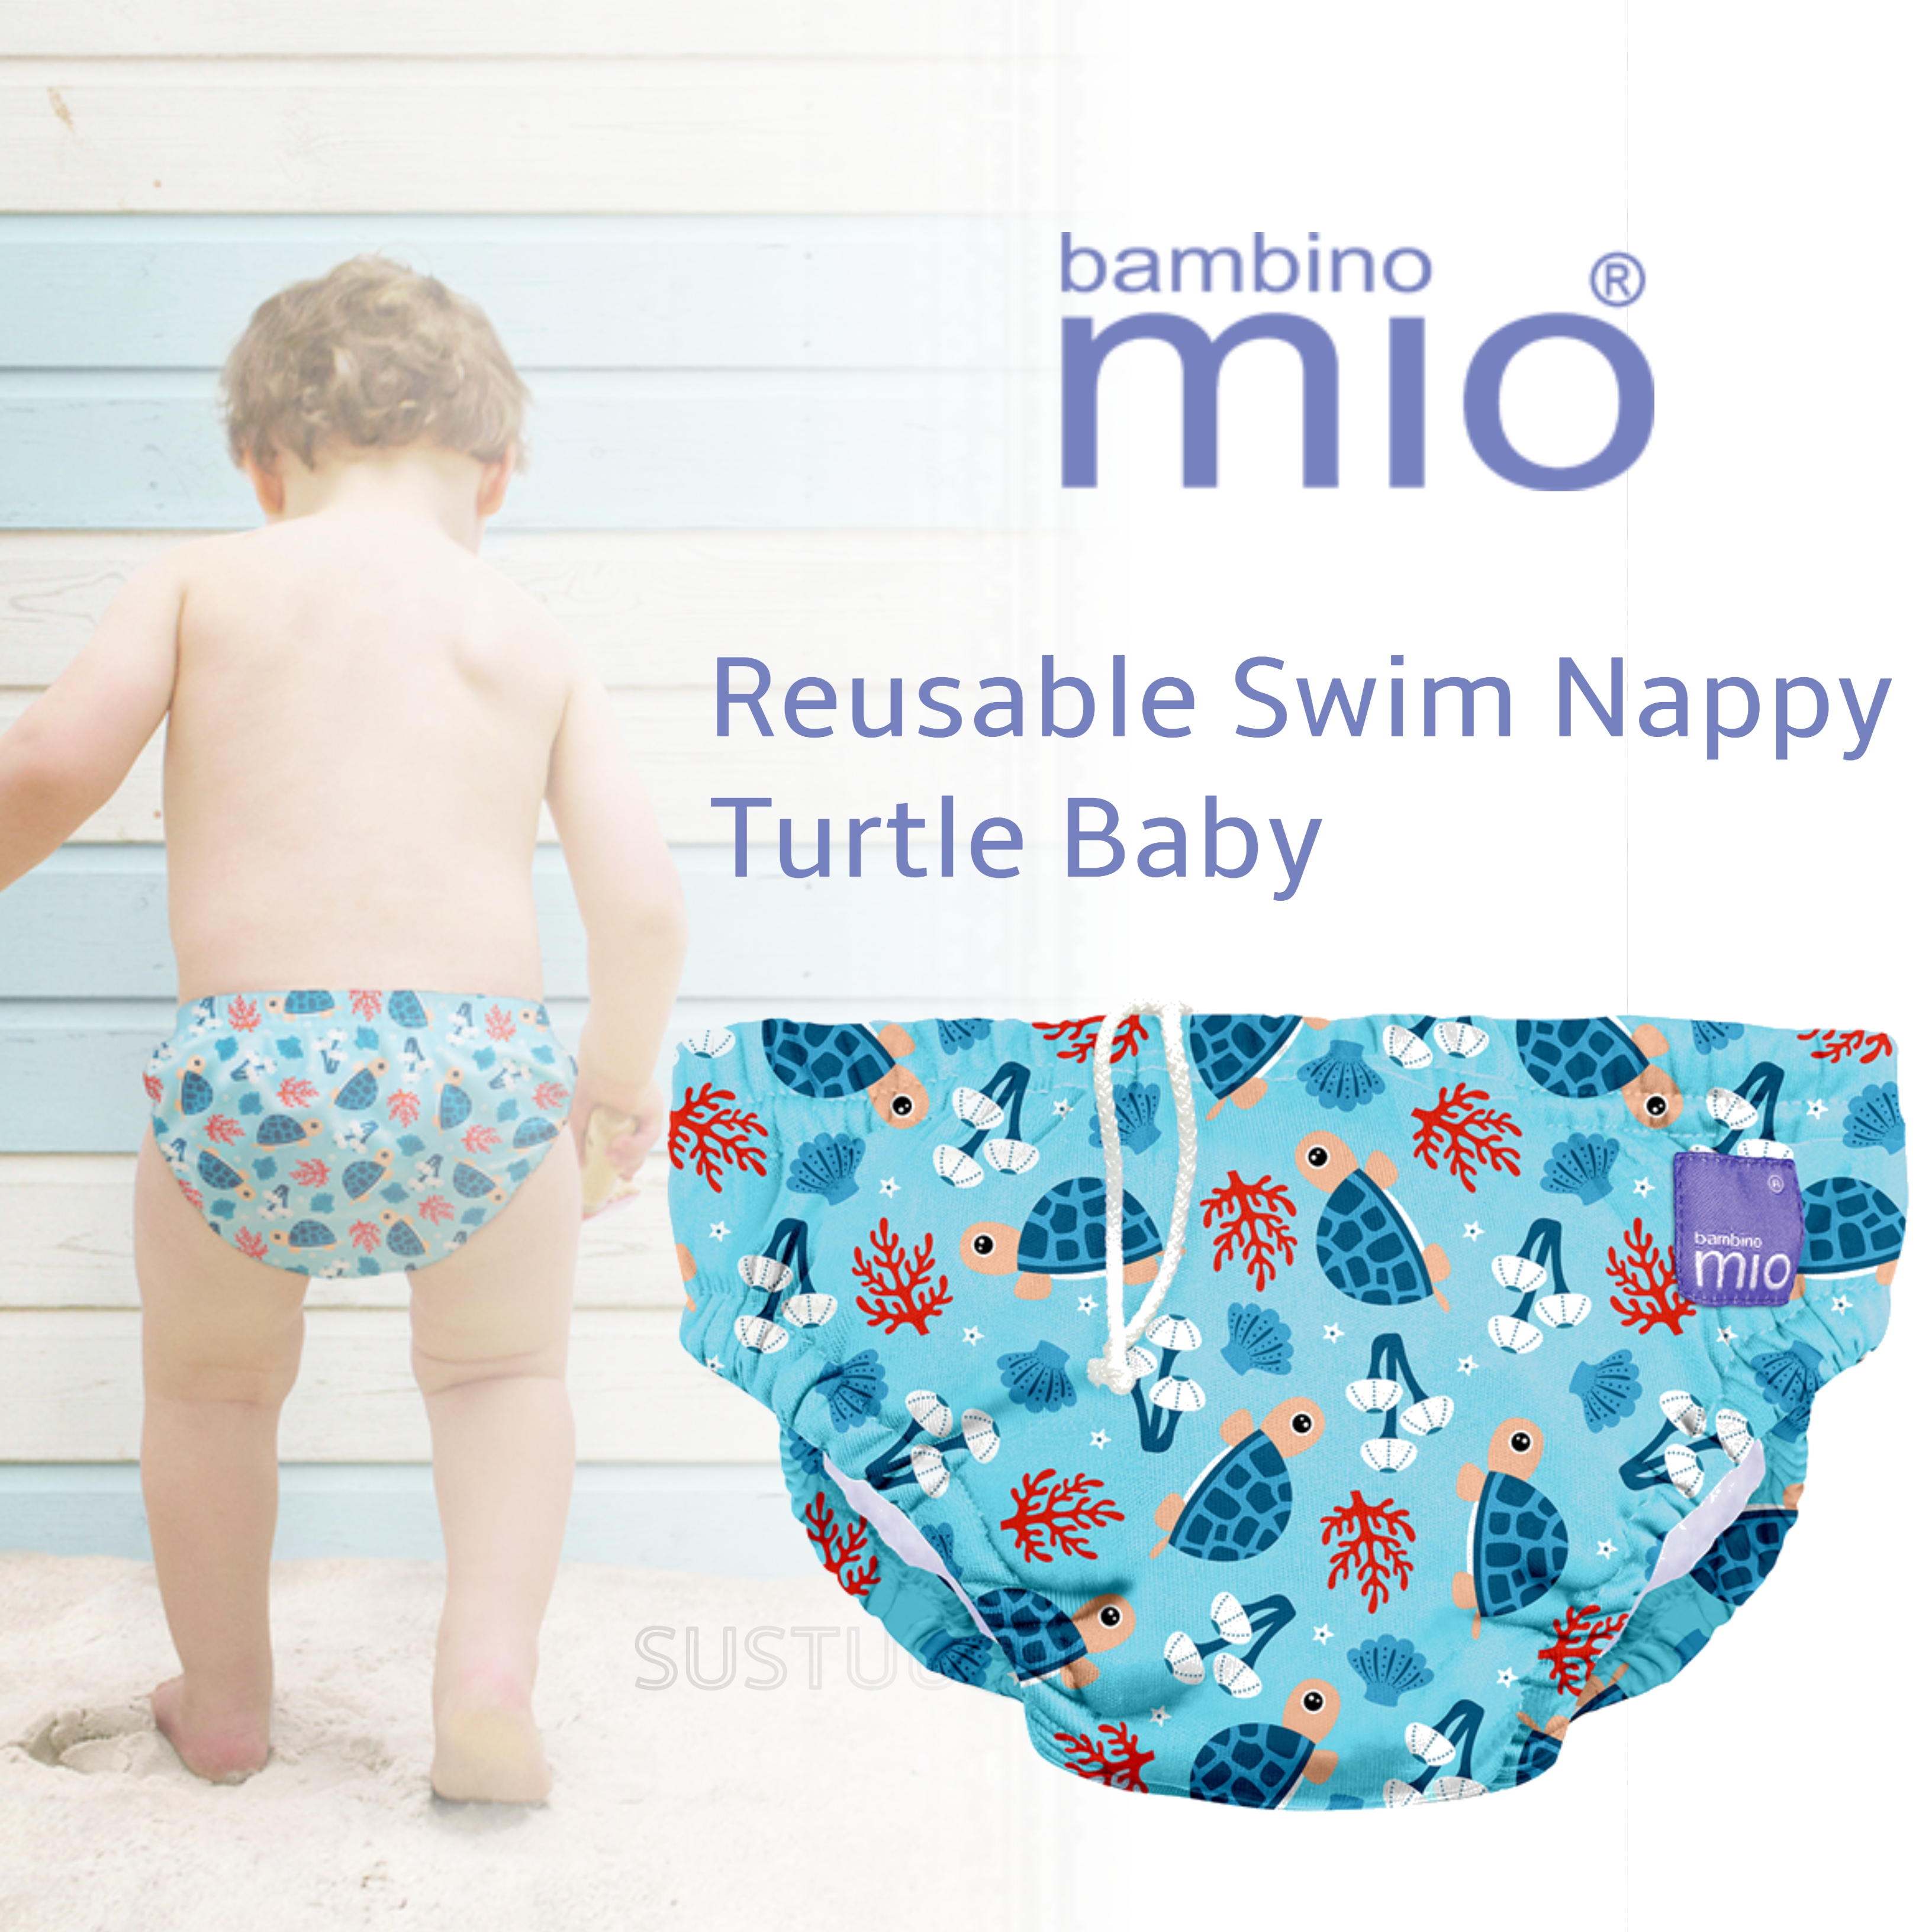 Bambino Mio Reusable Swim Nappy Turtle Baby|Water Resist Layer|Soft Cotton|2yrs+